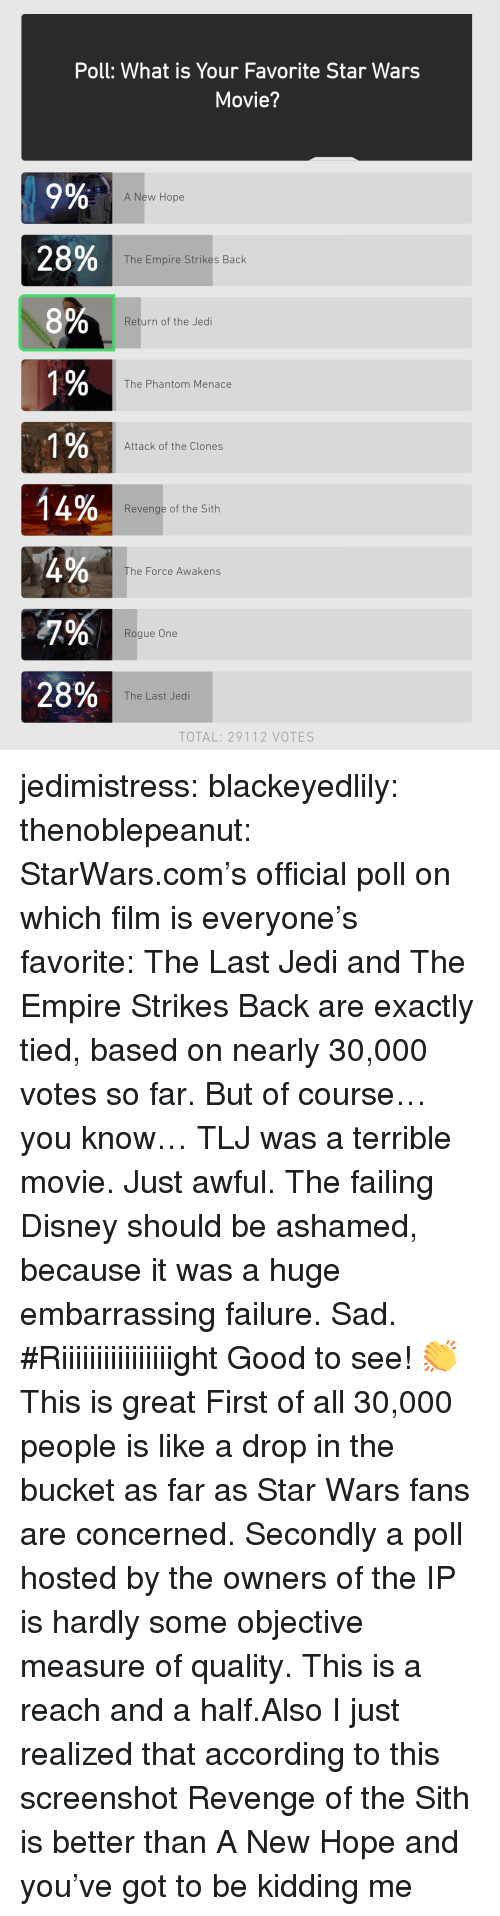 A New Hope: Poll: What is Your Favorite Star Wars  Movie?  9%  28%  8%  A New Hope  The Empire Strikes Back  Return of the Jedi  0  The Phantom Menace  0  0  Attack of the Clones  0  14%  Revenge of the Sith  he Force Awakens  Rogue One  28%  The Last Jedi  TOTAL: 29112 VOTES jedimistress: blackeyedlily:  thenoblepeanut:   StarWars.com's official poll on which film is everyone's favorite: The Last Jedi and The Empire Strikes Back are exactly tied, based on nearly 30,000 votes so far. But of course… you know… TLJ was a terrible movie. Just awful. The failing Disney should be ashamed, because it was a huge embarrassing failure. Sad.  #Riiiiiiiiiiiiiiiight   Good to see! 👏  This is great  First of all 30,000 people is like a drop in the bucket as far as Star Wars fans are concerned. Secondly a poll hosted by the owners of the IP is hardly some objective measure of quality. This is a reach and a half.Also I just realized that according to this screenshot Revenge of the Sith is better than A New Hope and you've got to be kidding me